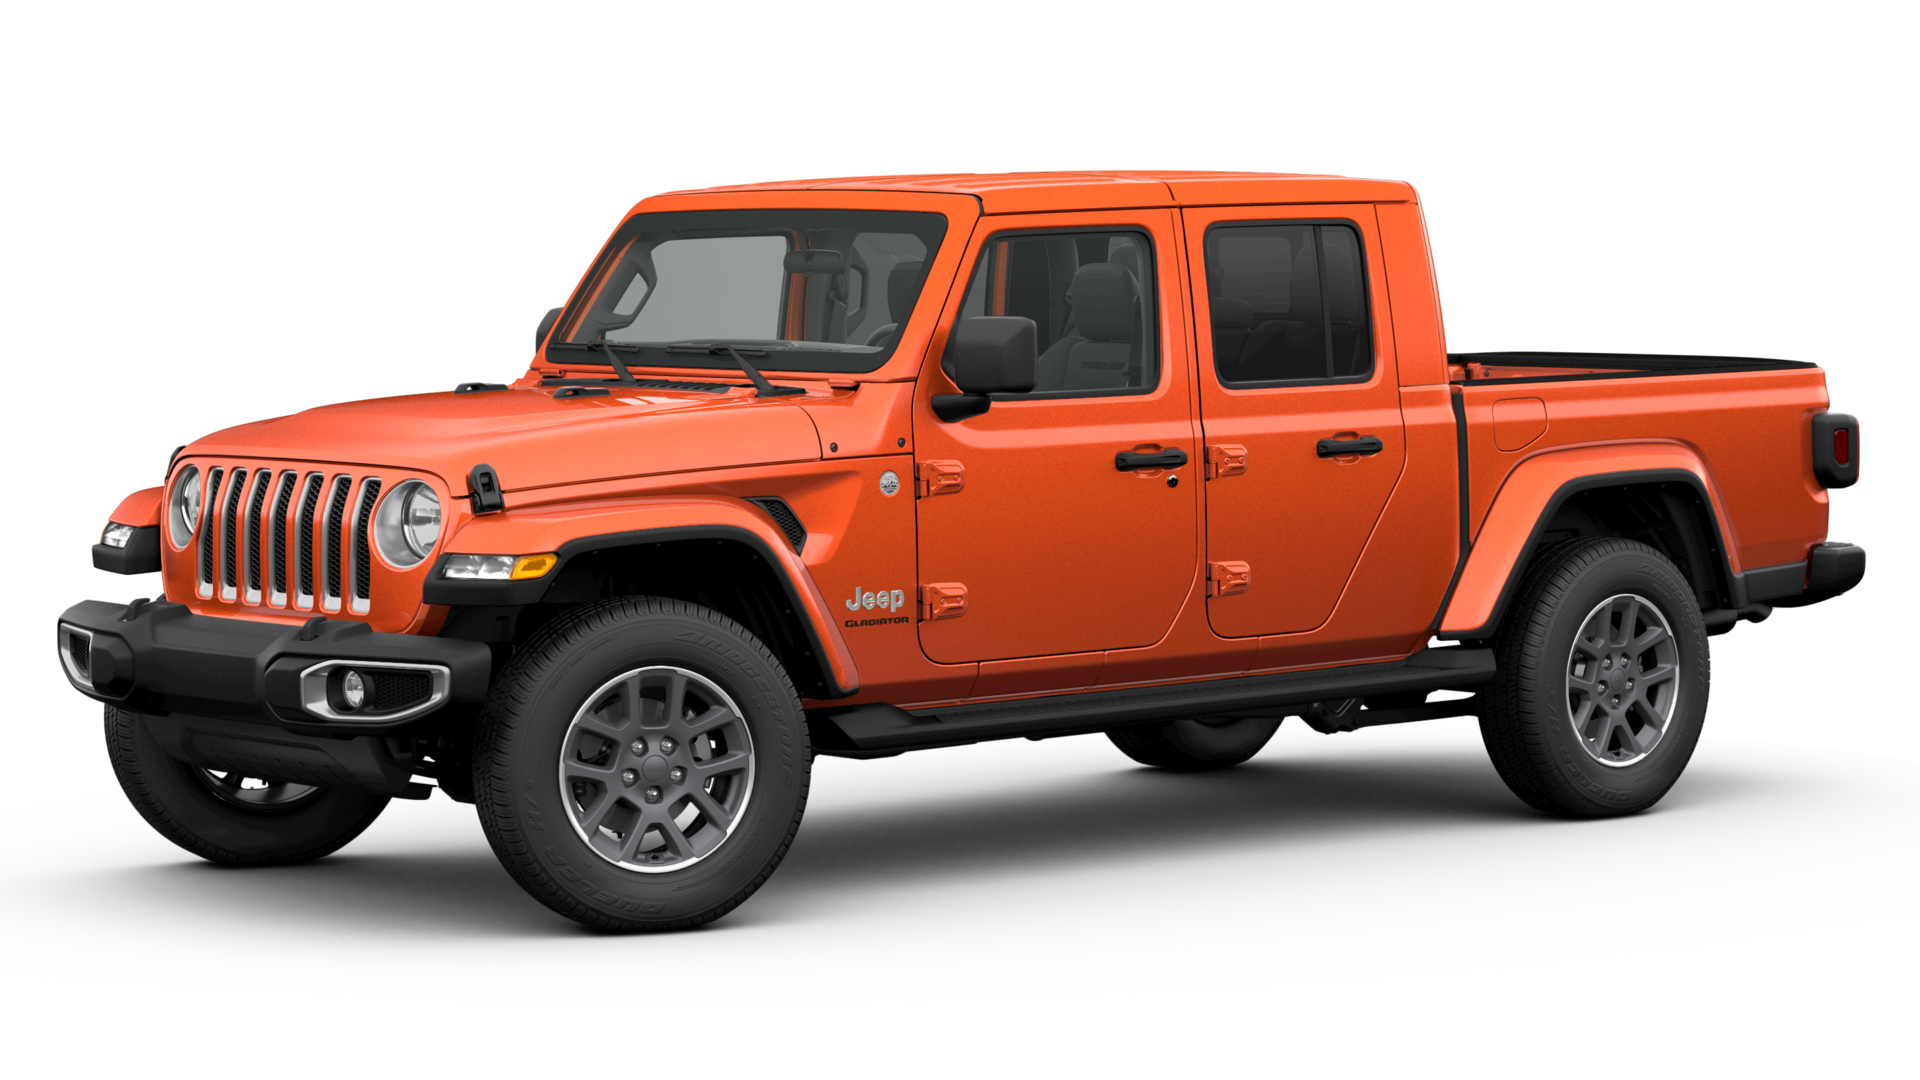 2020 Jeep Gladiator 4x4 Orange